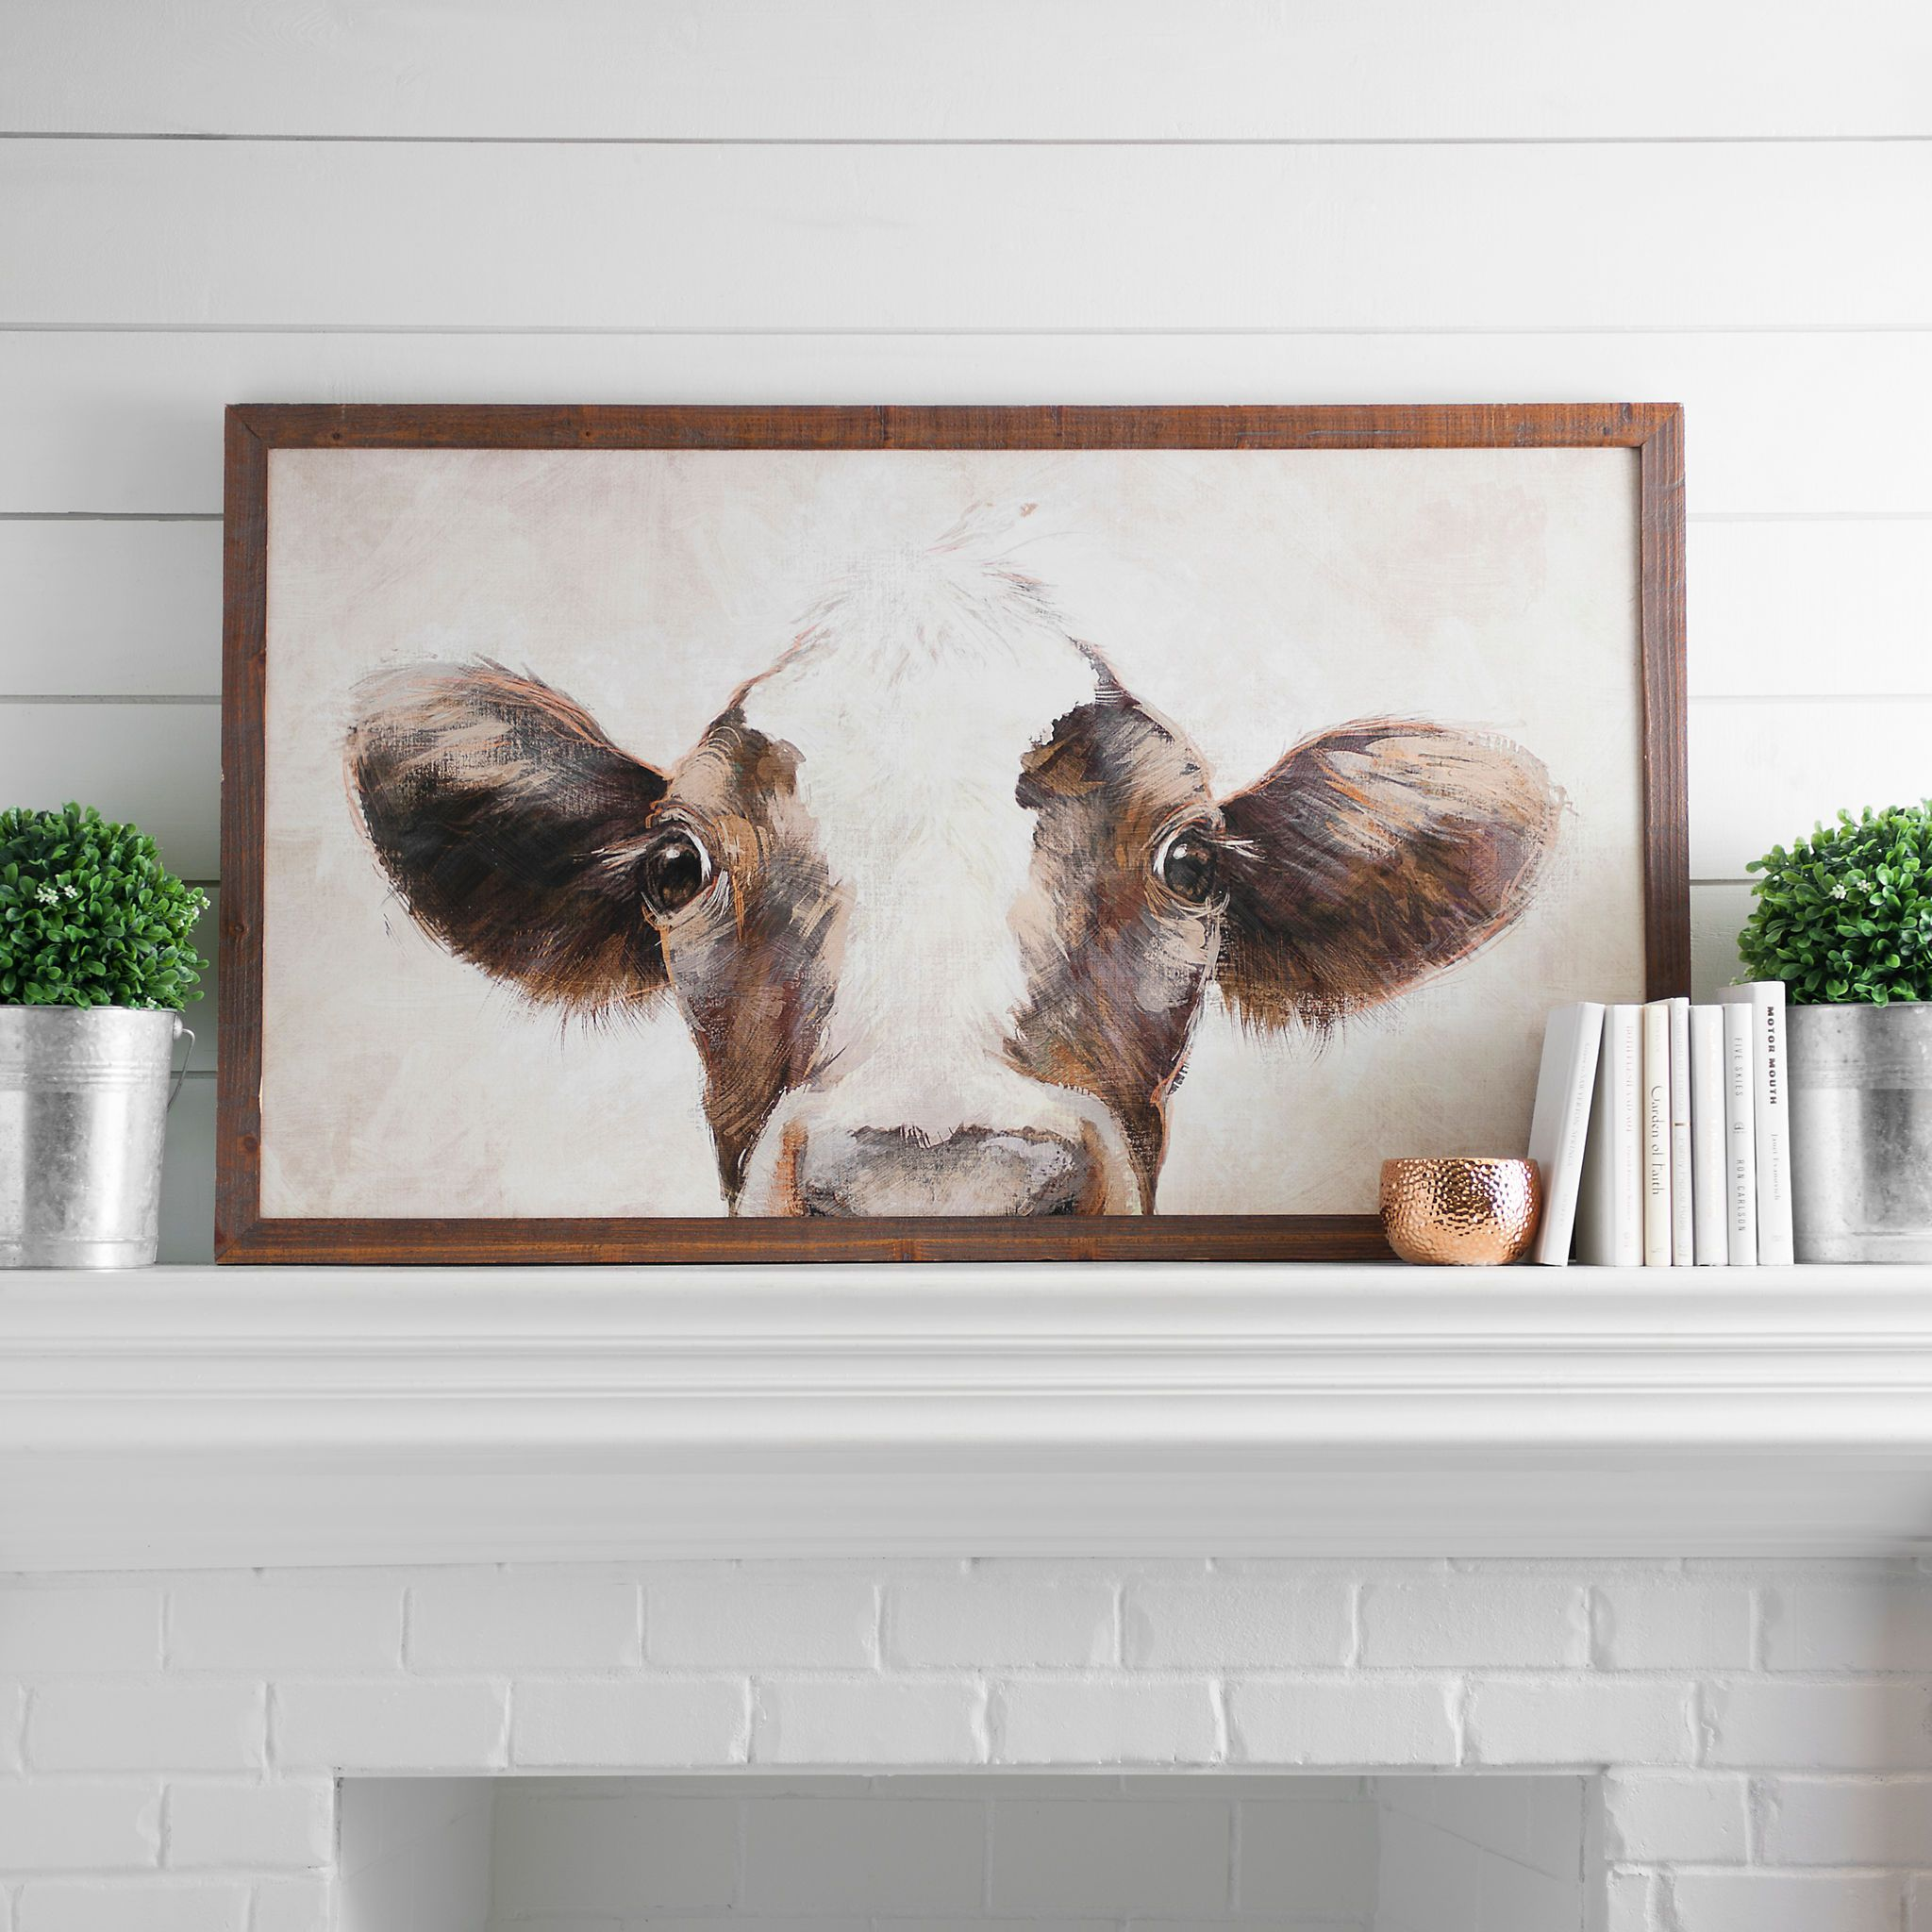 b51d7b7f270 Chocolate Milk Framed Art Print in 2019